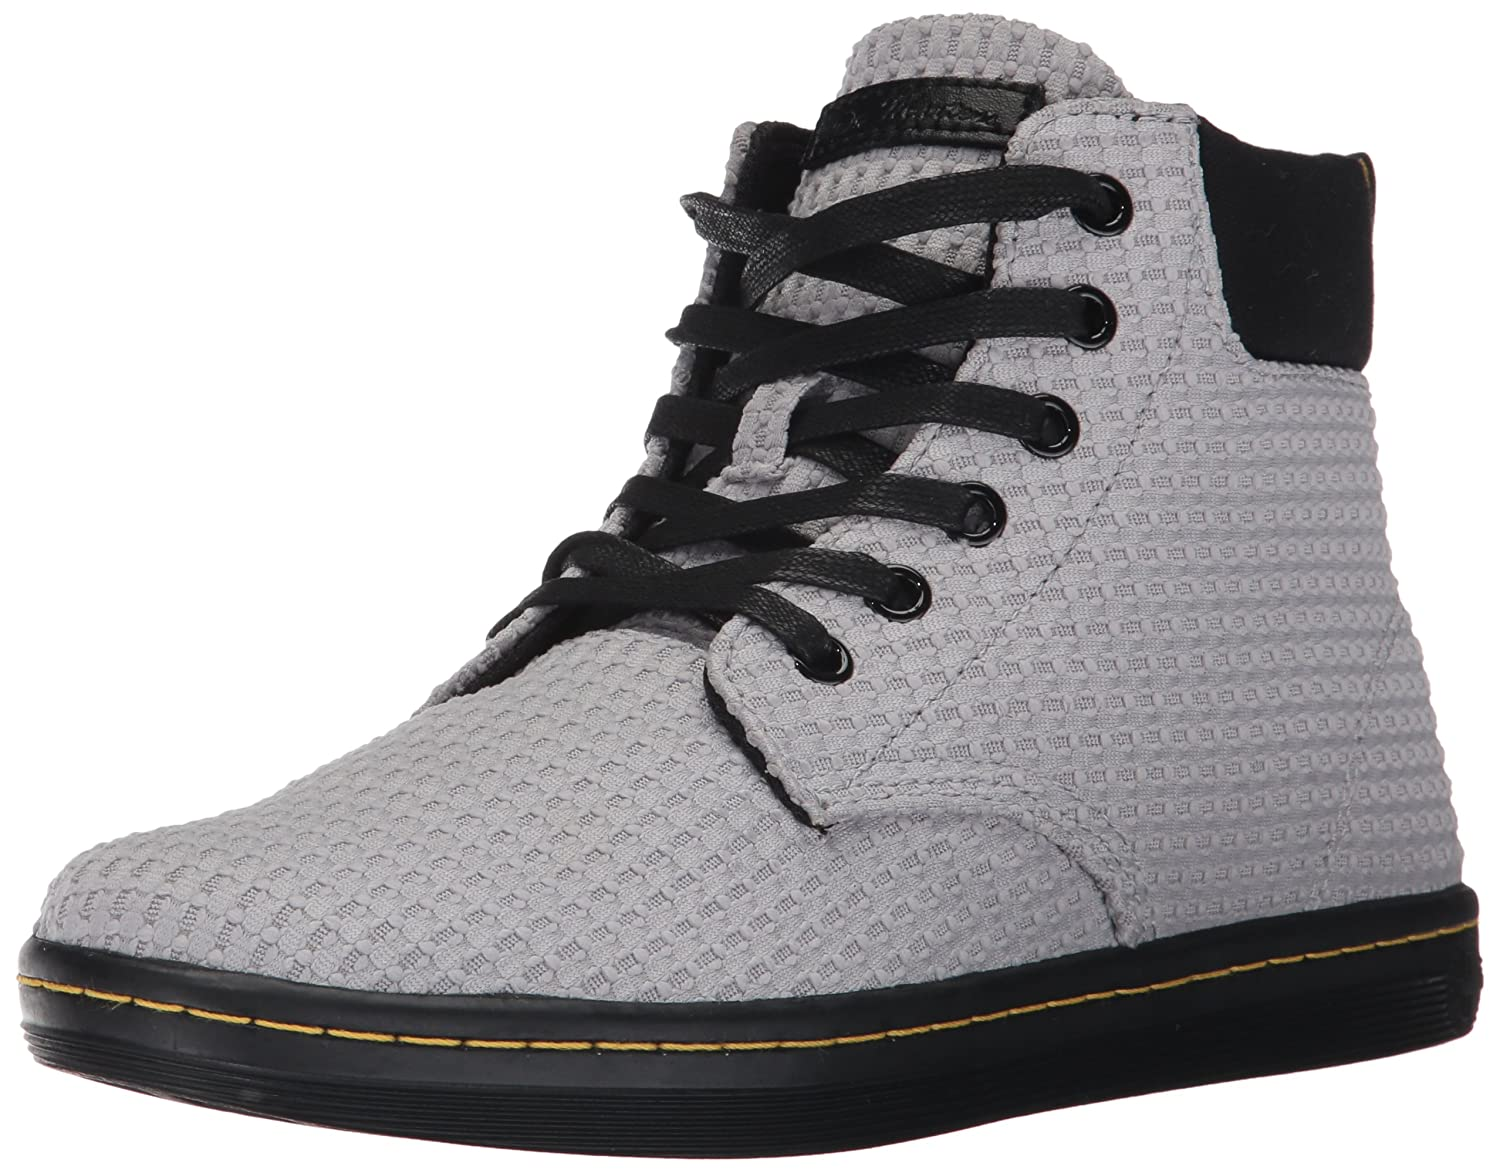 Dr. Martens Baskets Mode pour pour Baskets Femme Mid 3428 Grey+black 8742488 - boatplans.space